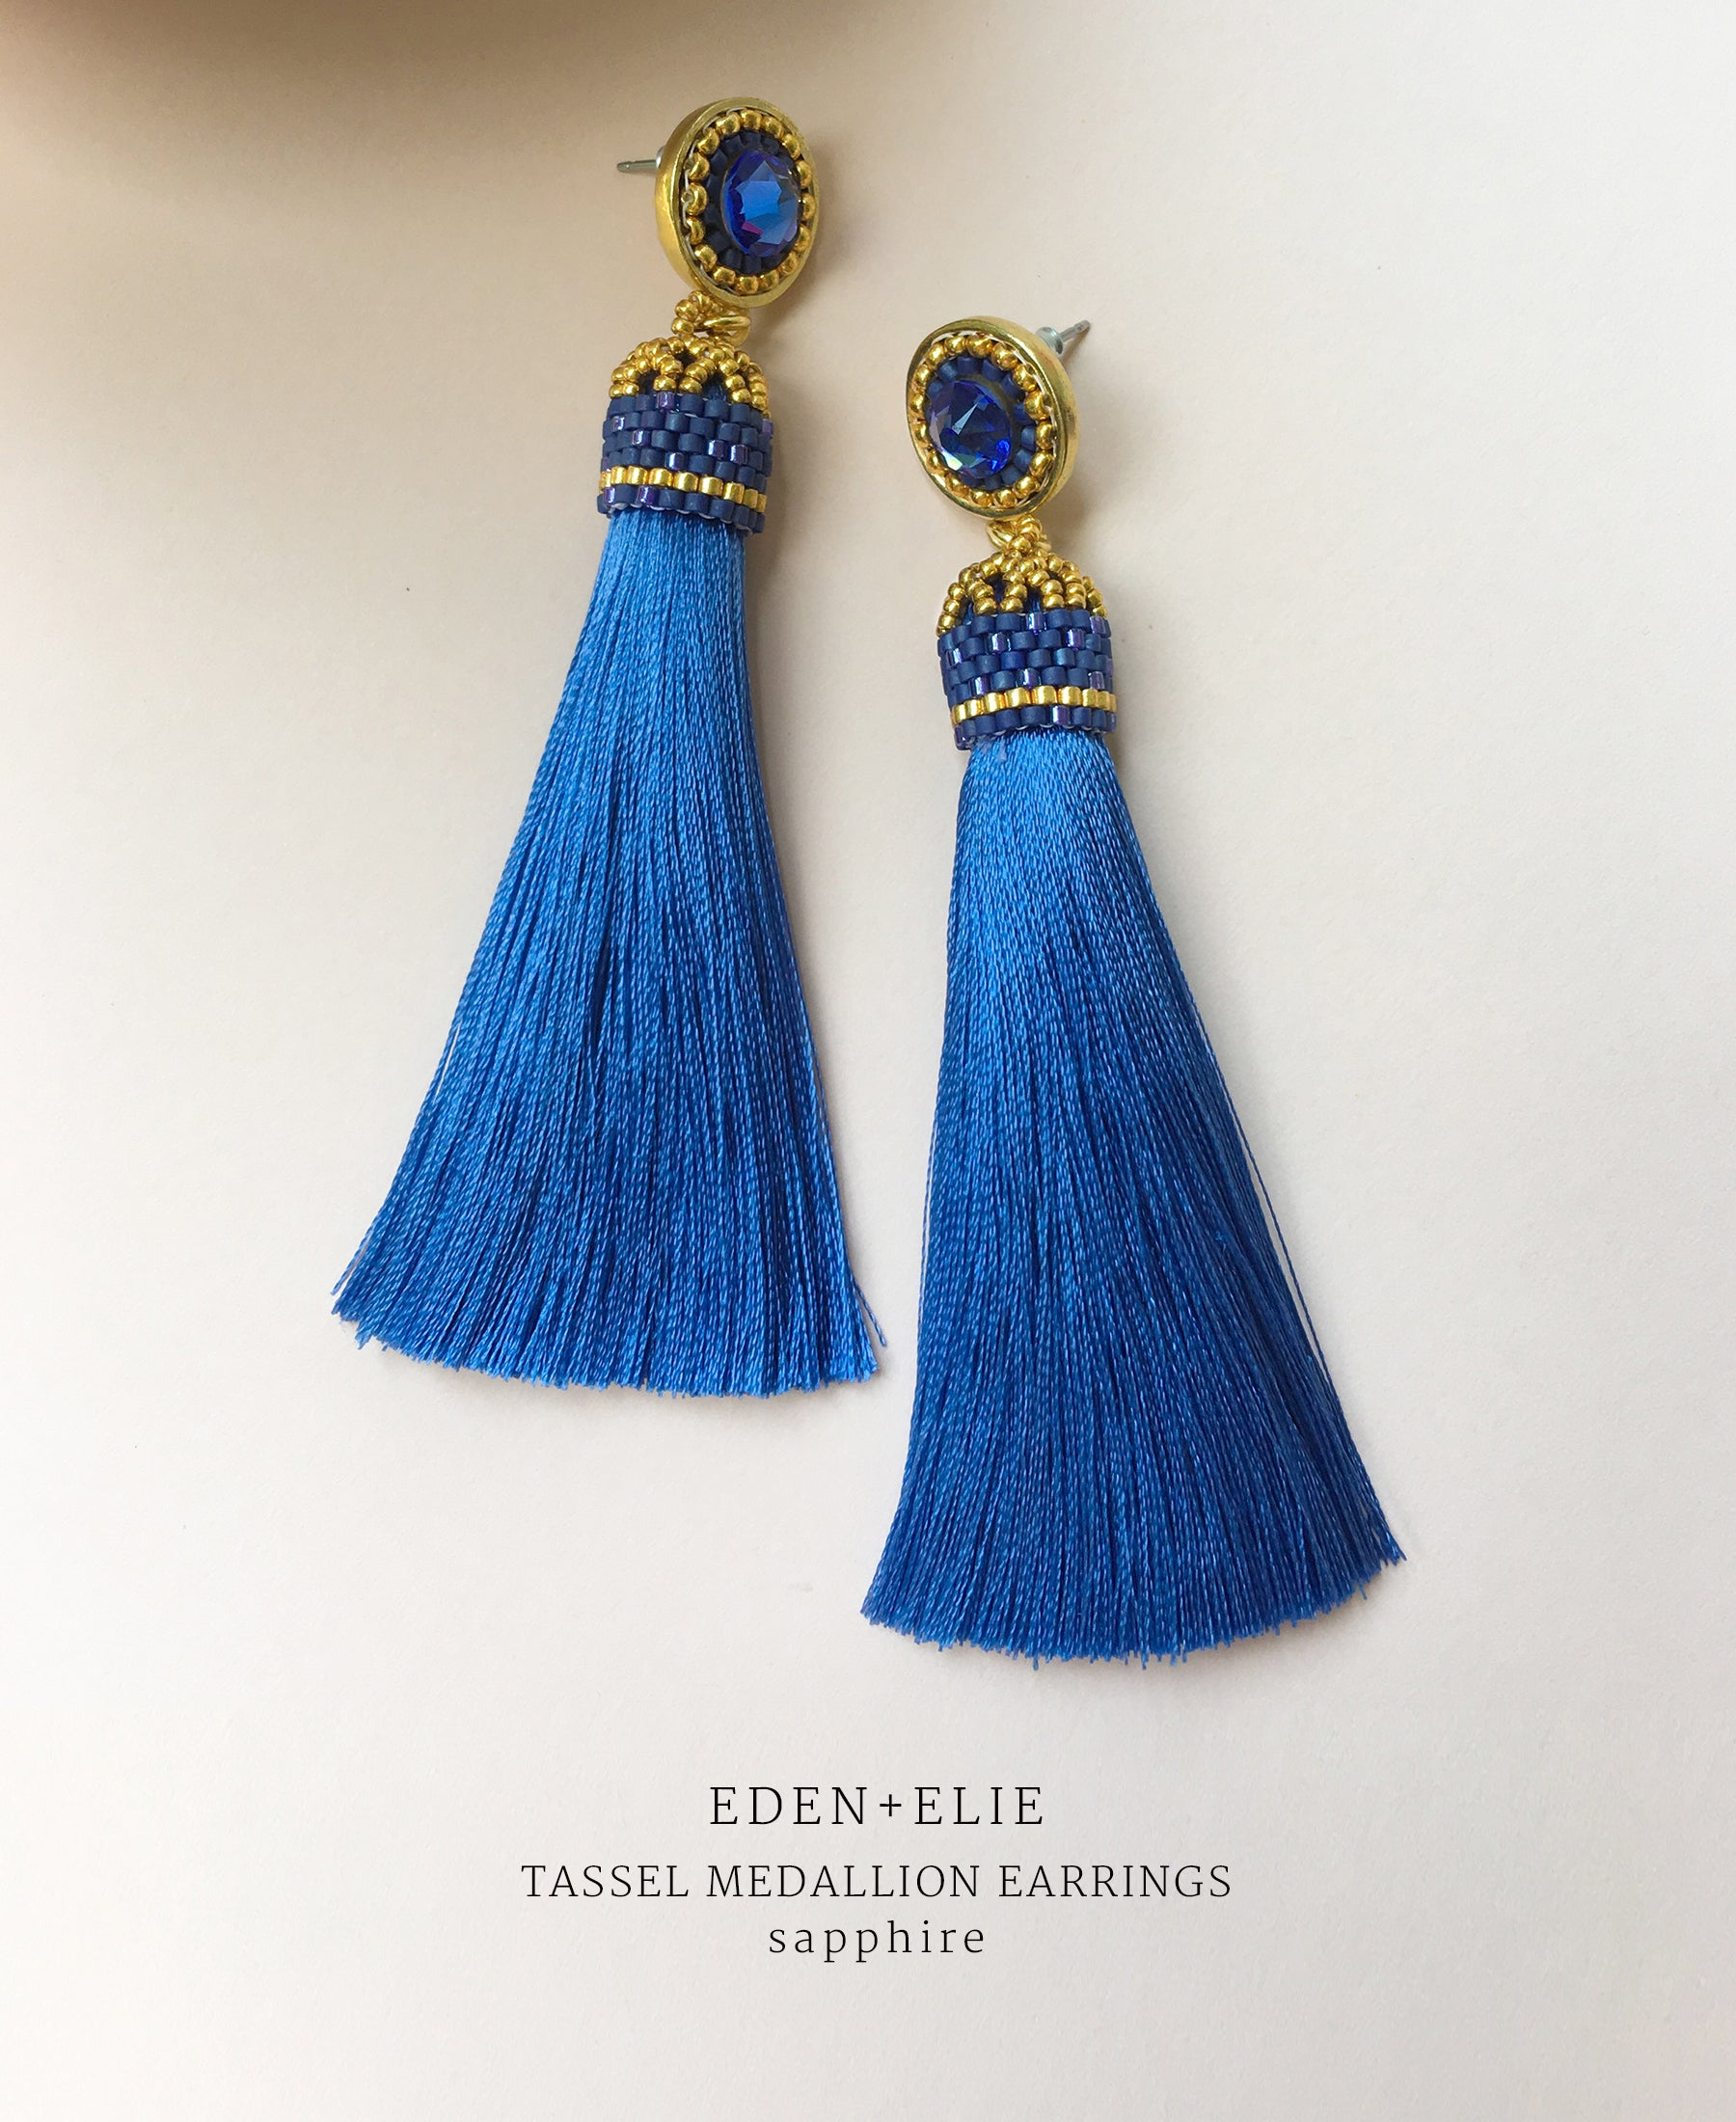 EDEN + ELIE silk tassel statement earrings - sapphire blue